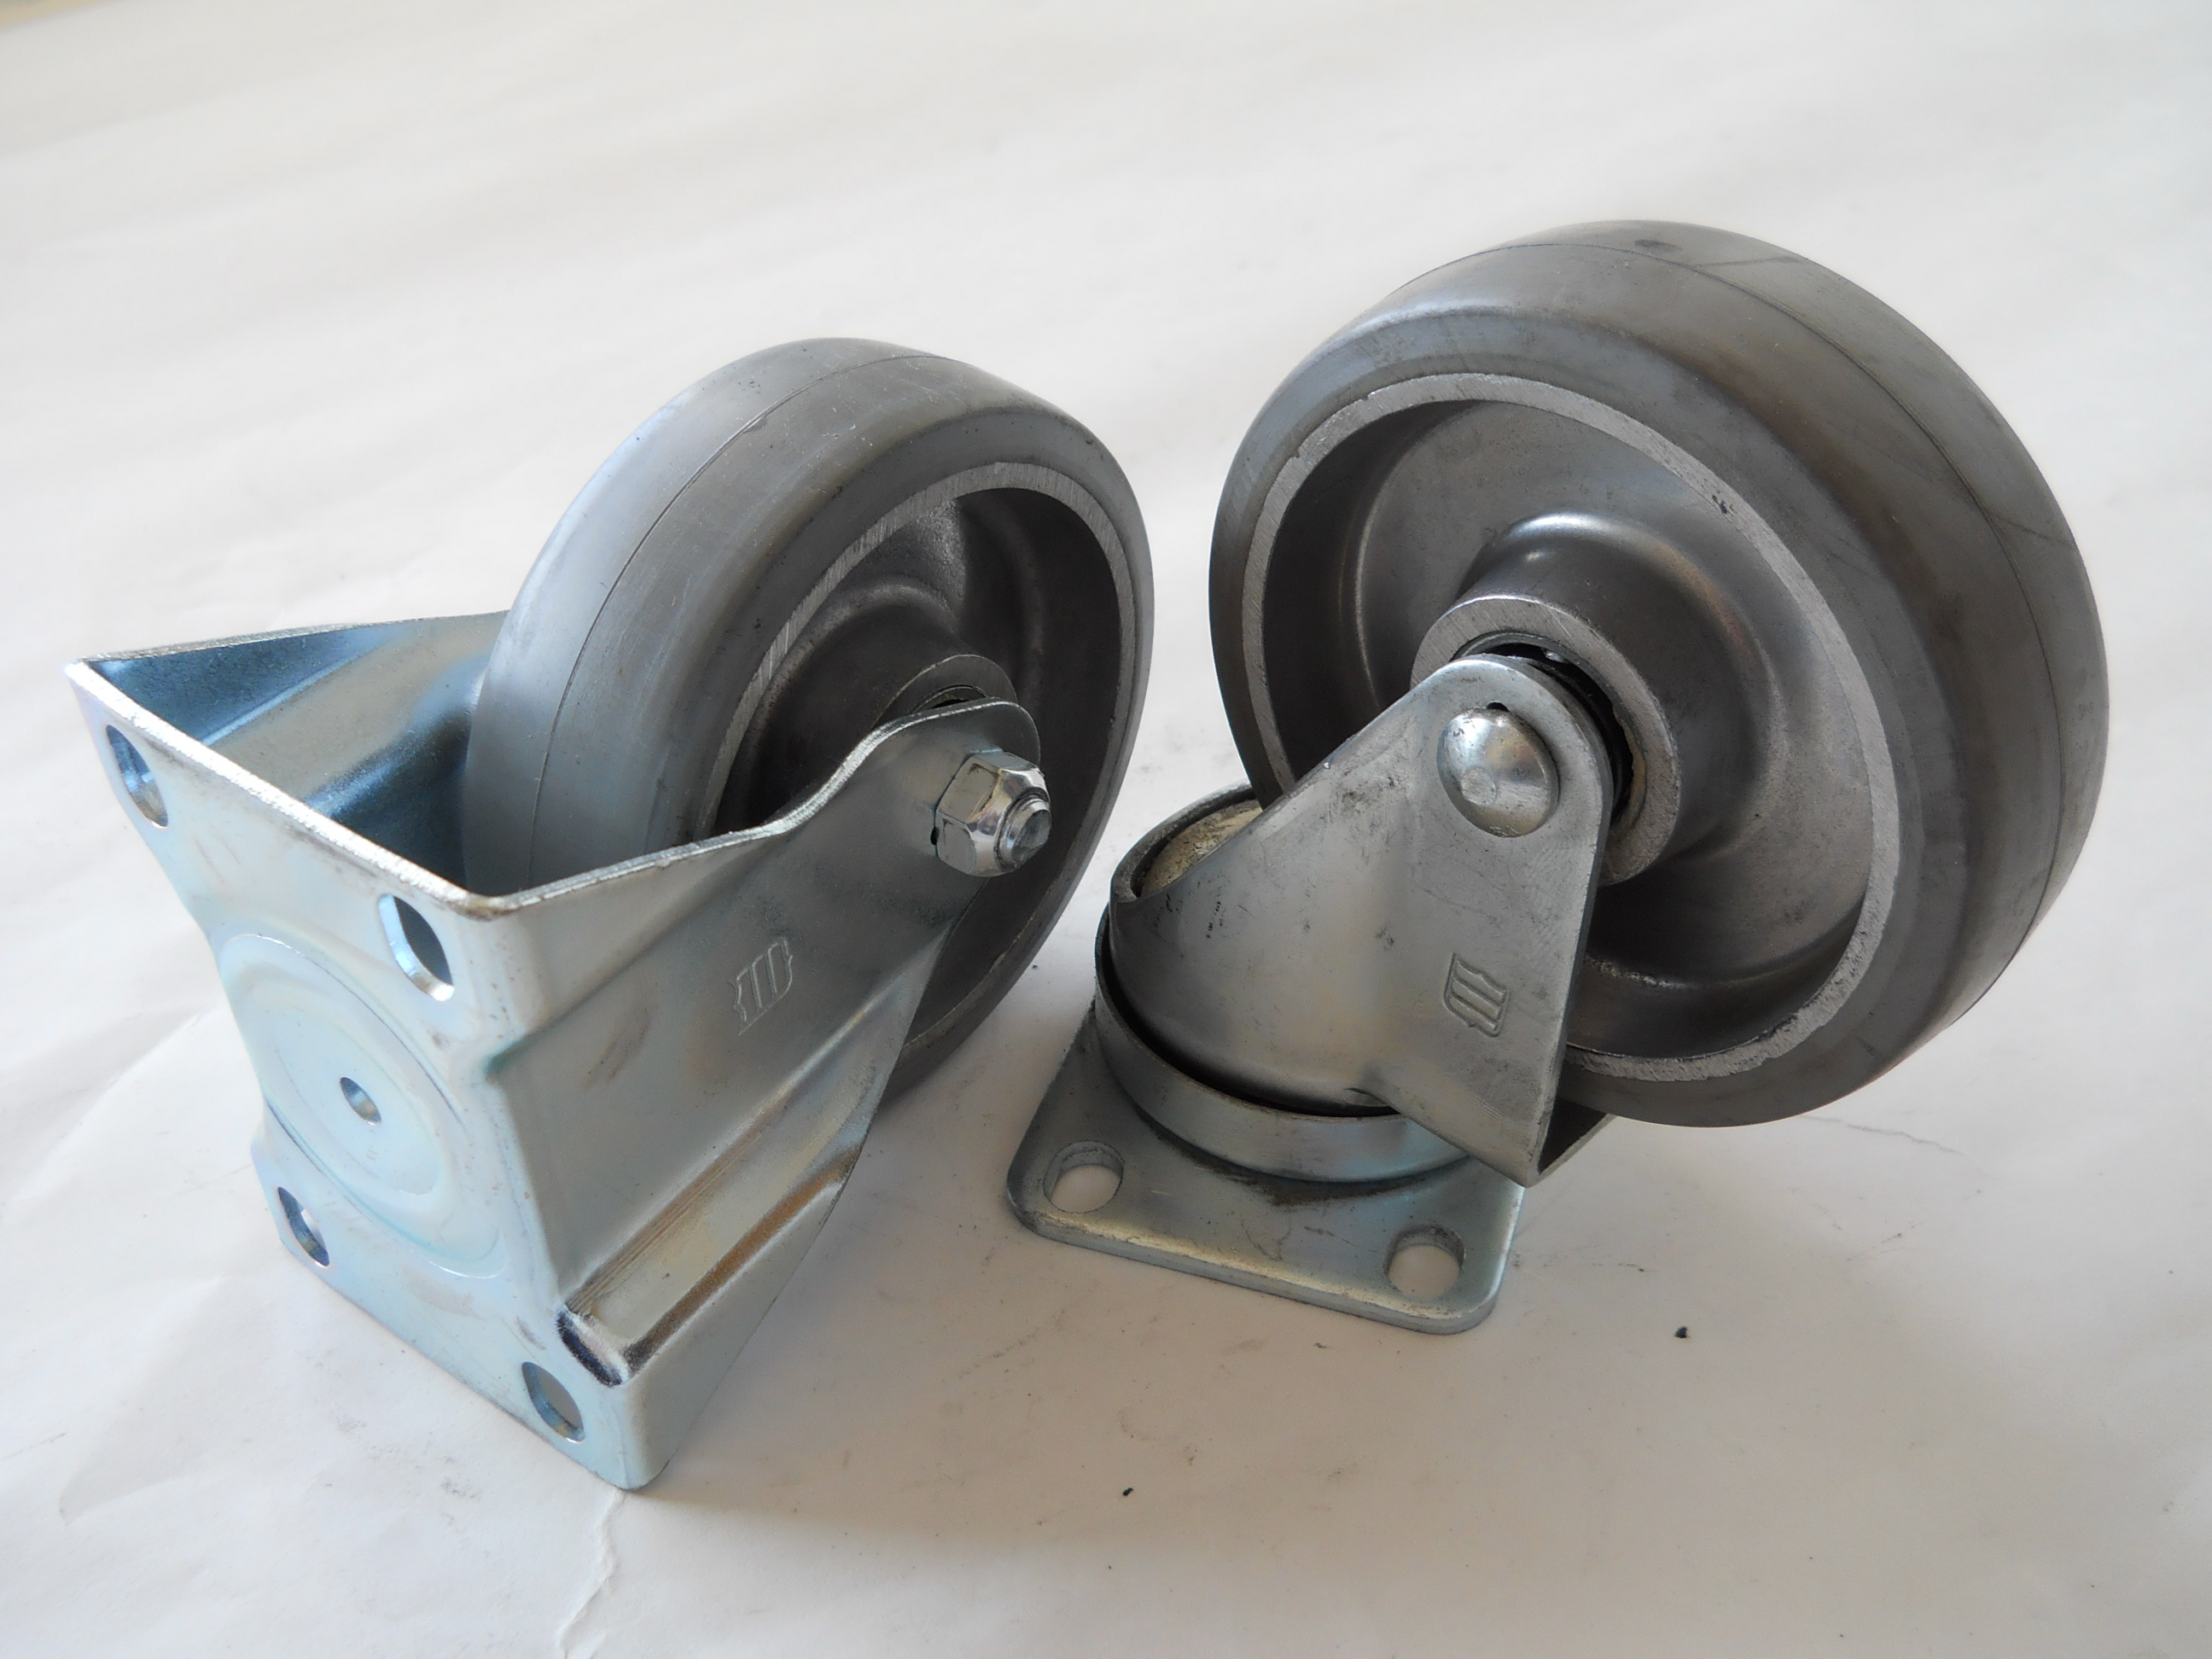 rolling wheels - parts